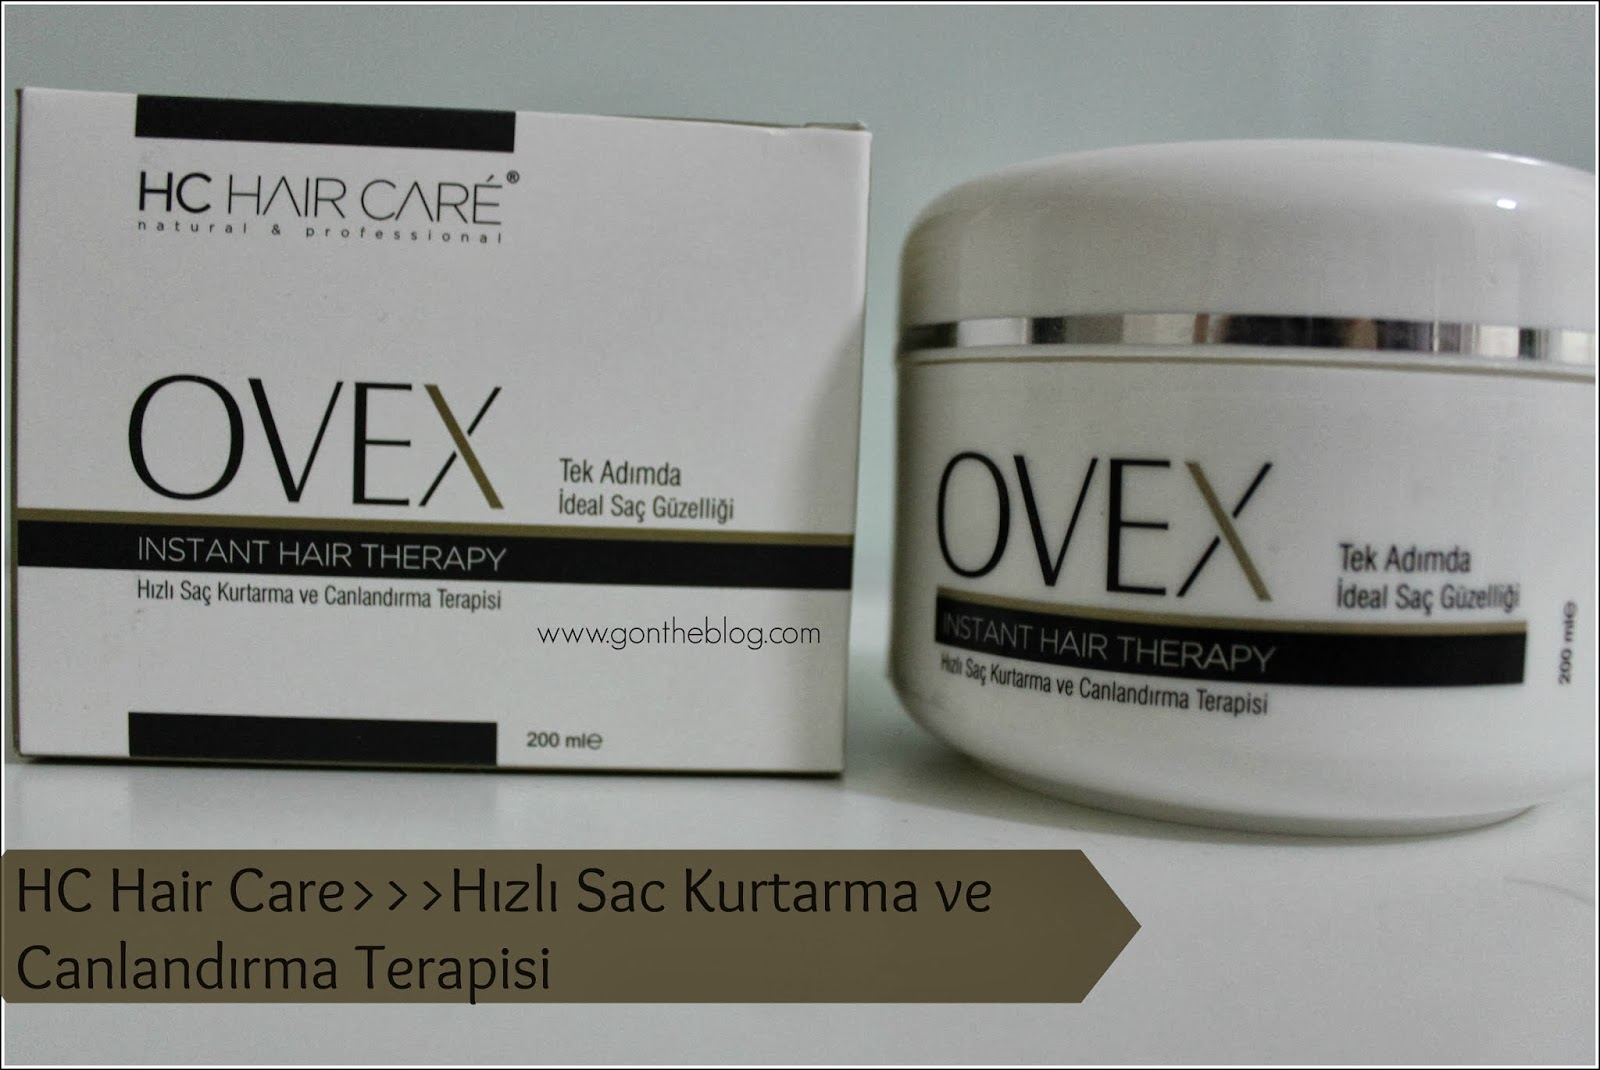 hc hair care ovex